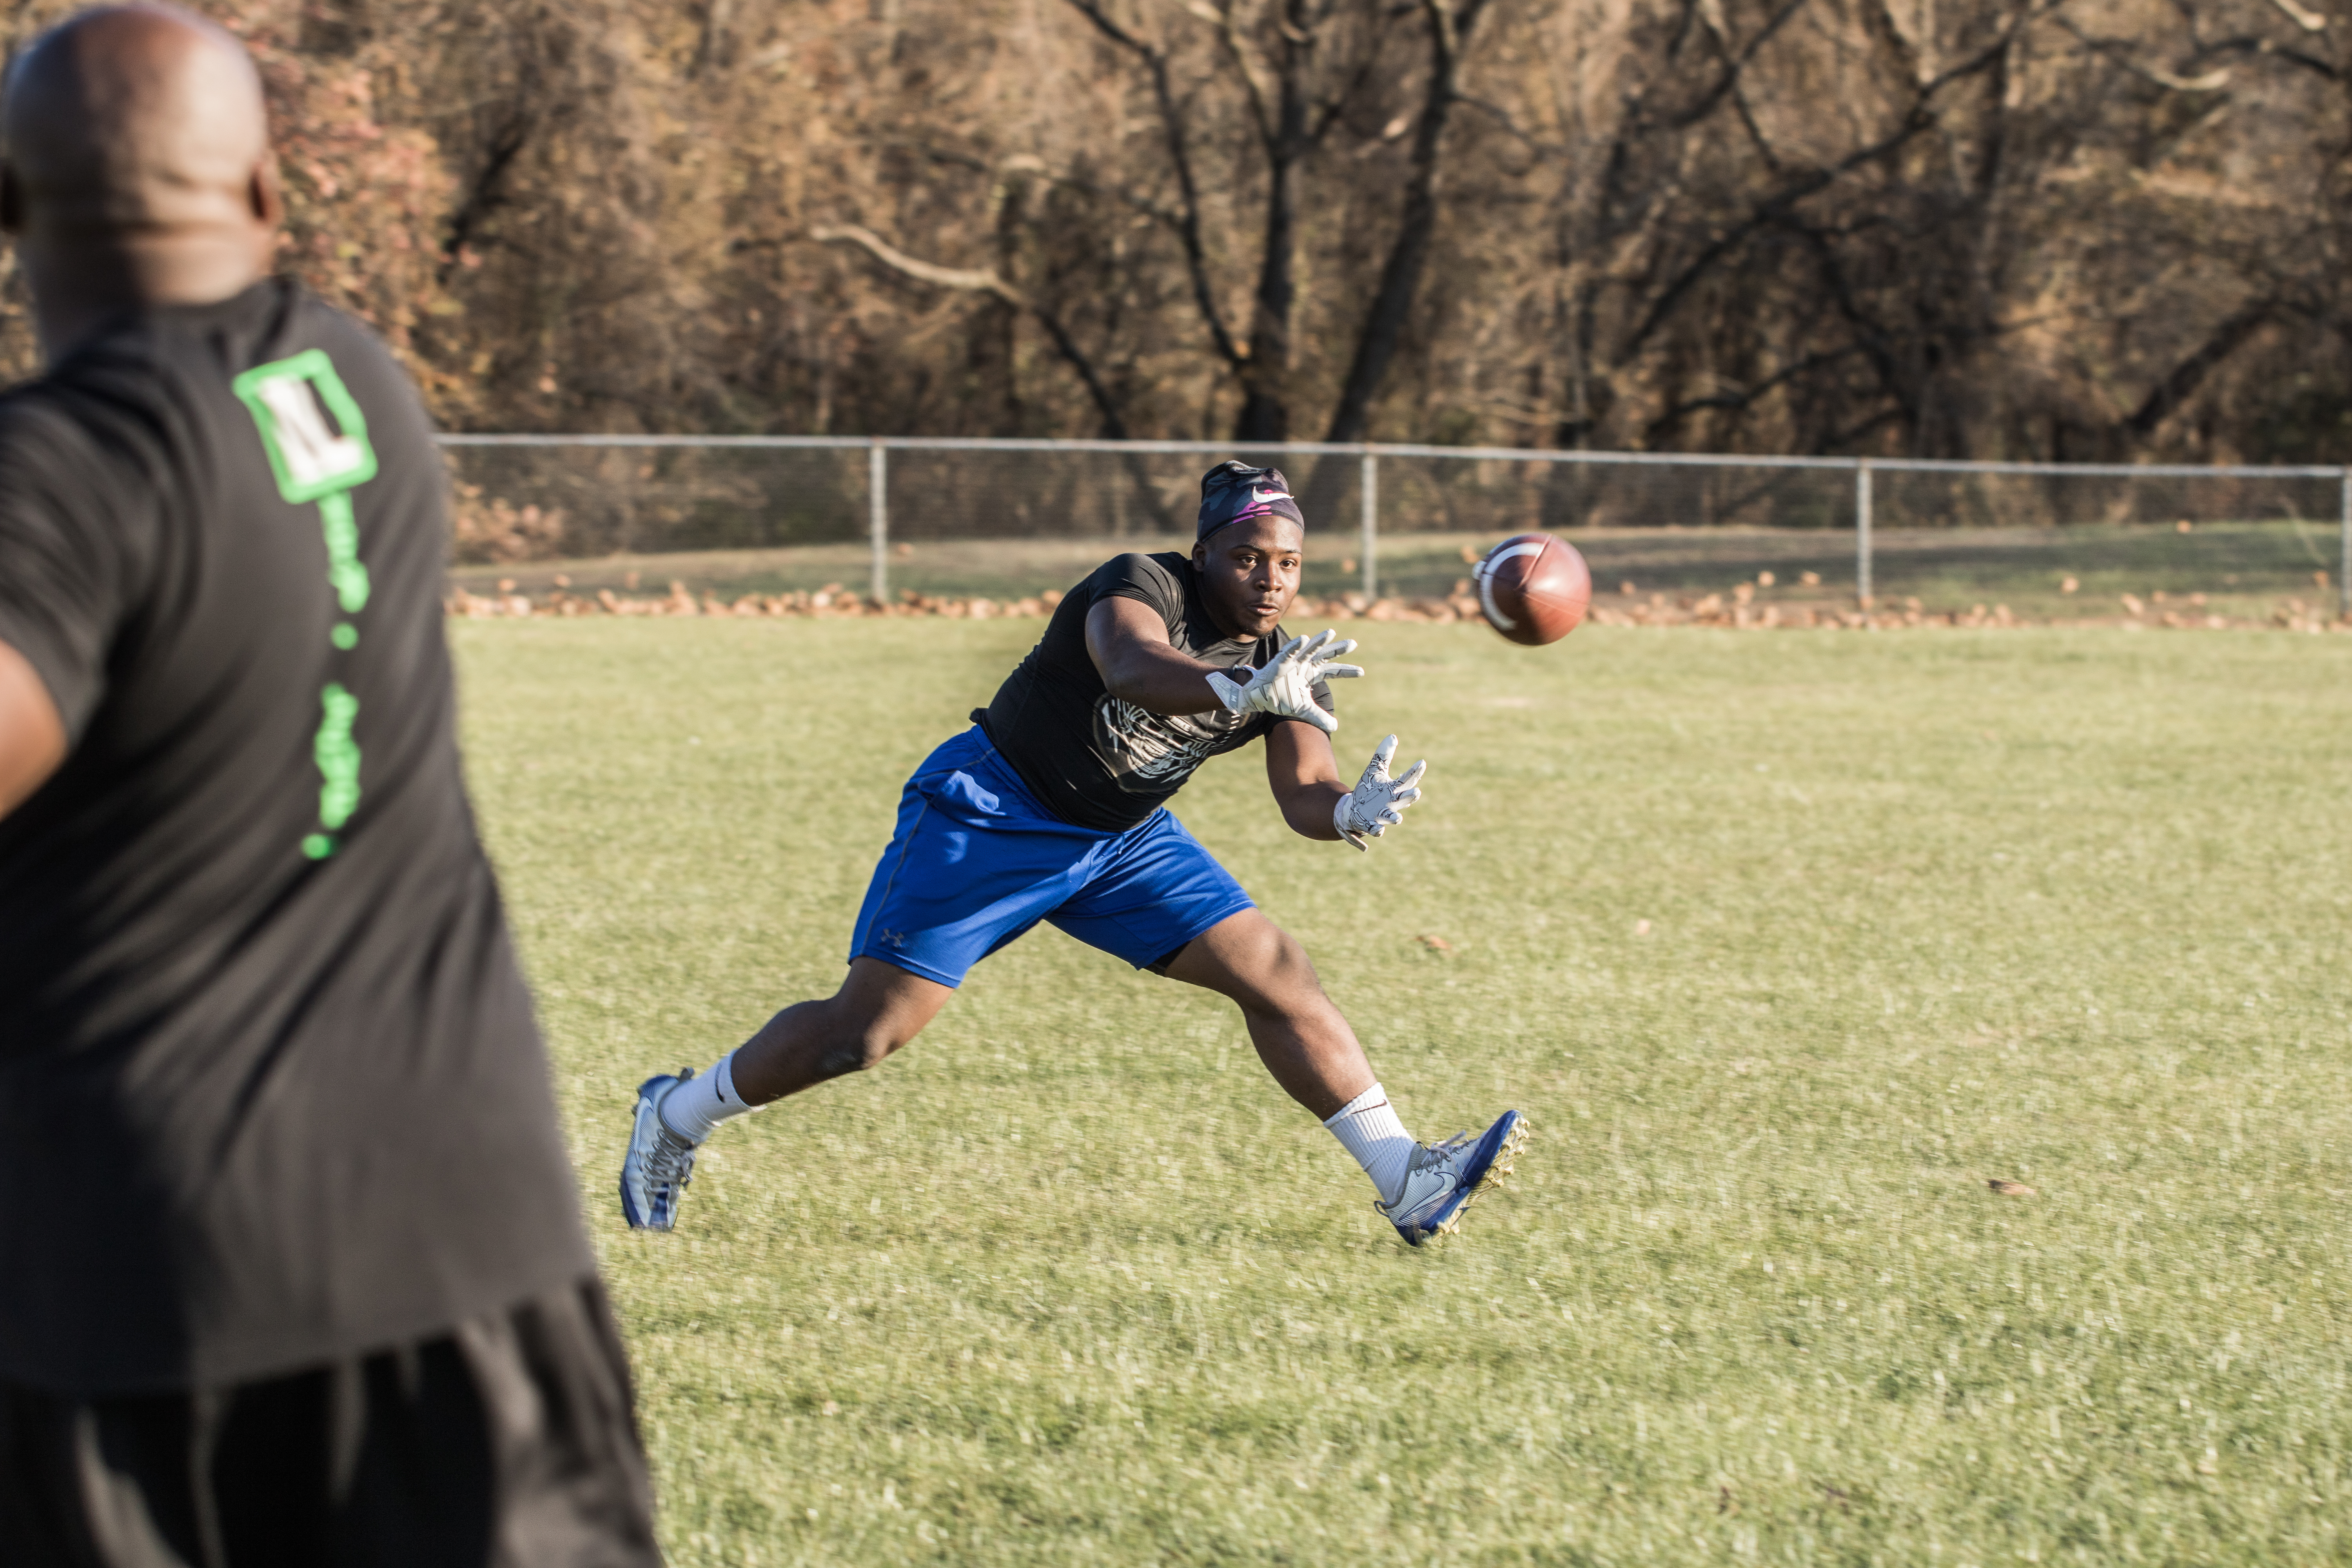 Ej catching the ball